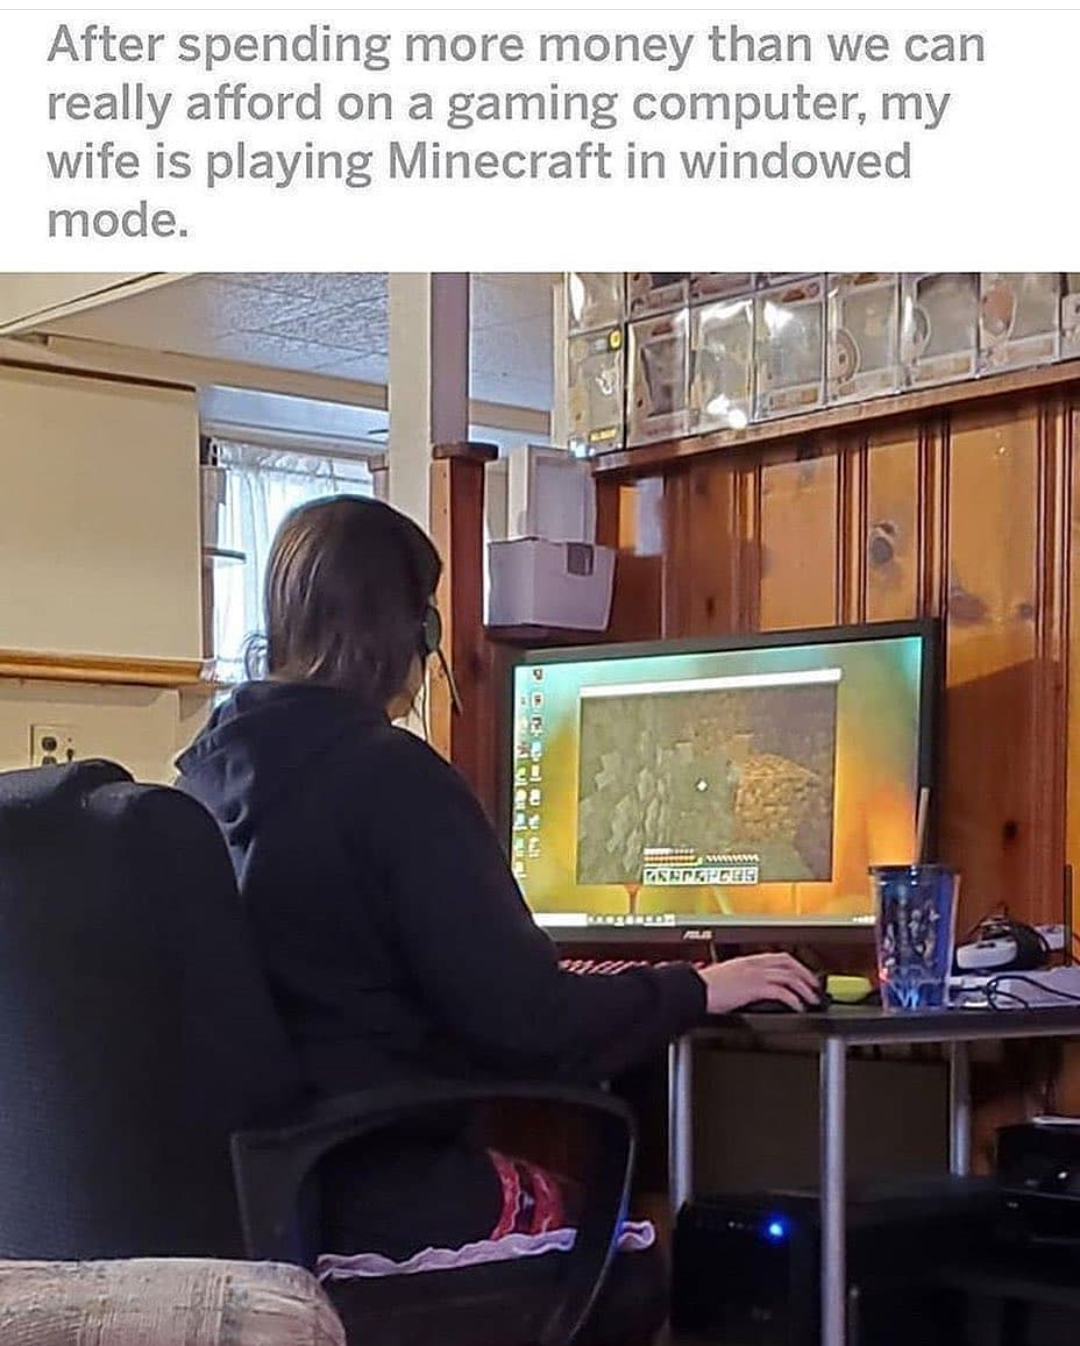 Who plays Minecraft in windowed mode!! OMG!!